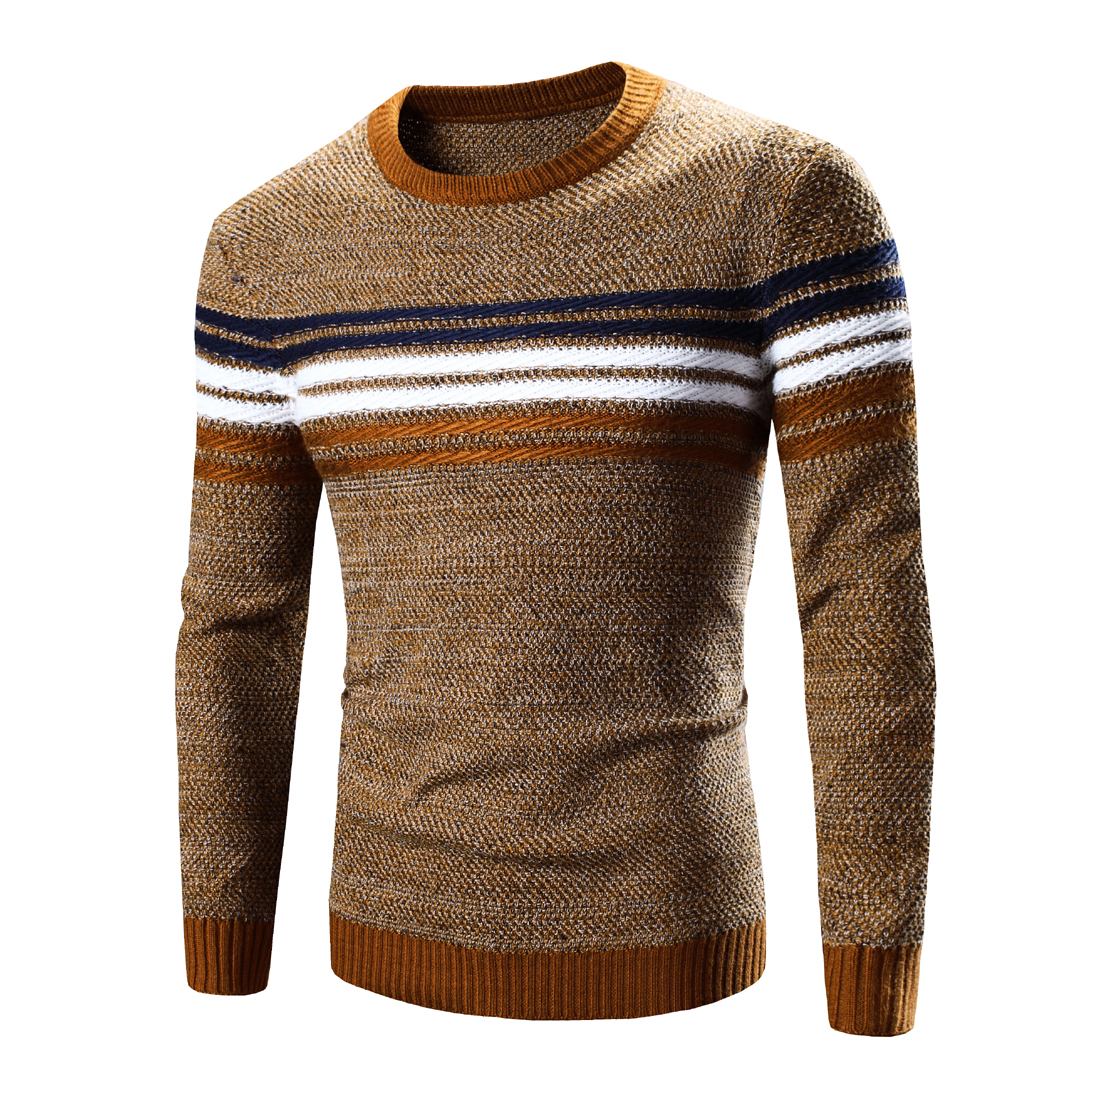 Norway Shop is official store of sweaters from Dale of Norway and other Norwegian brands. You can buy wool men's jackets, Norwegian hats, women's merino wool sweaters. Free Express WorldWide delivery including UK, Canada, Australia, USA.